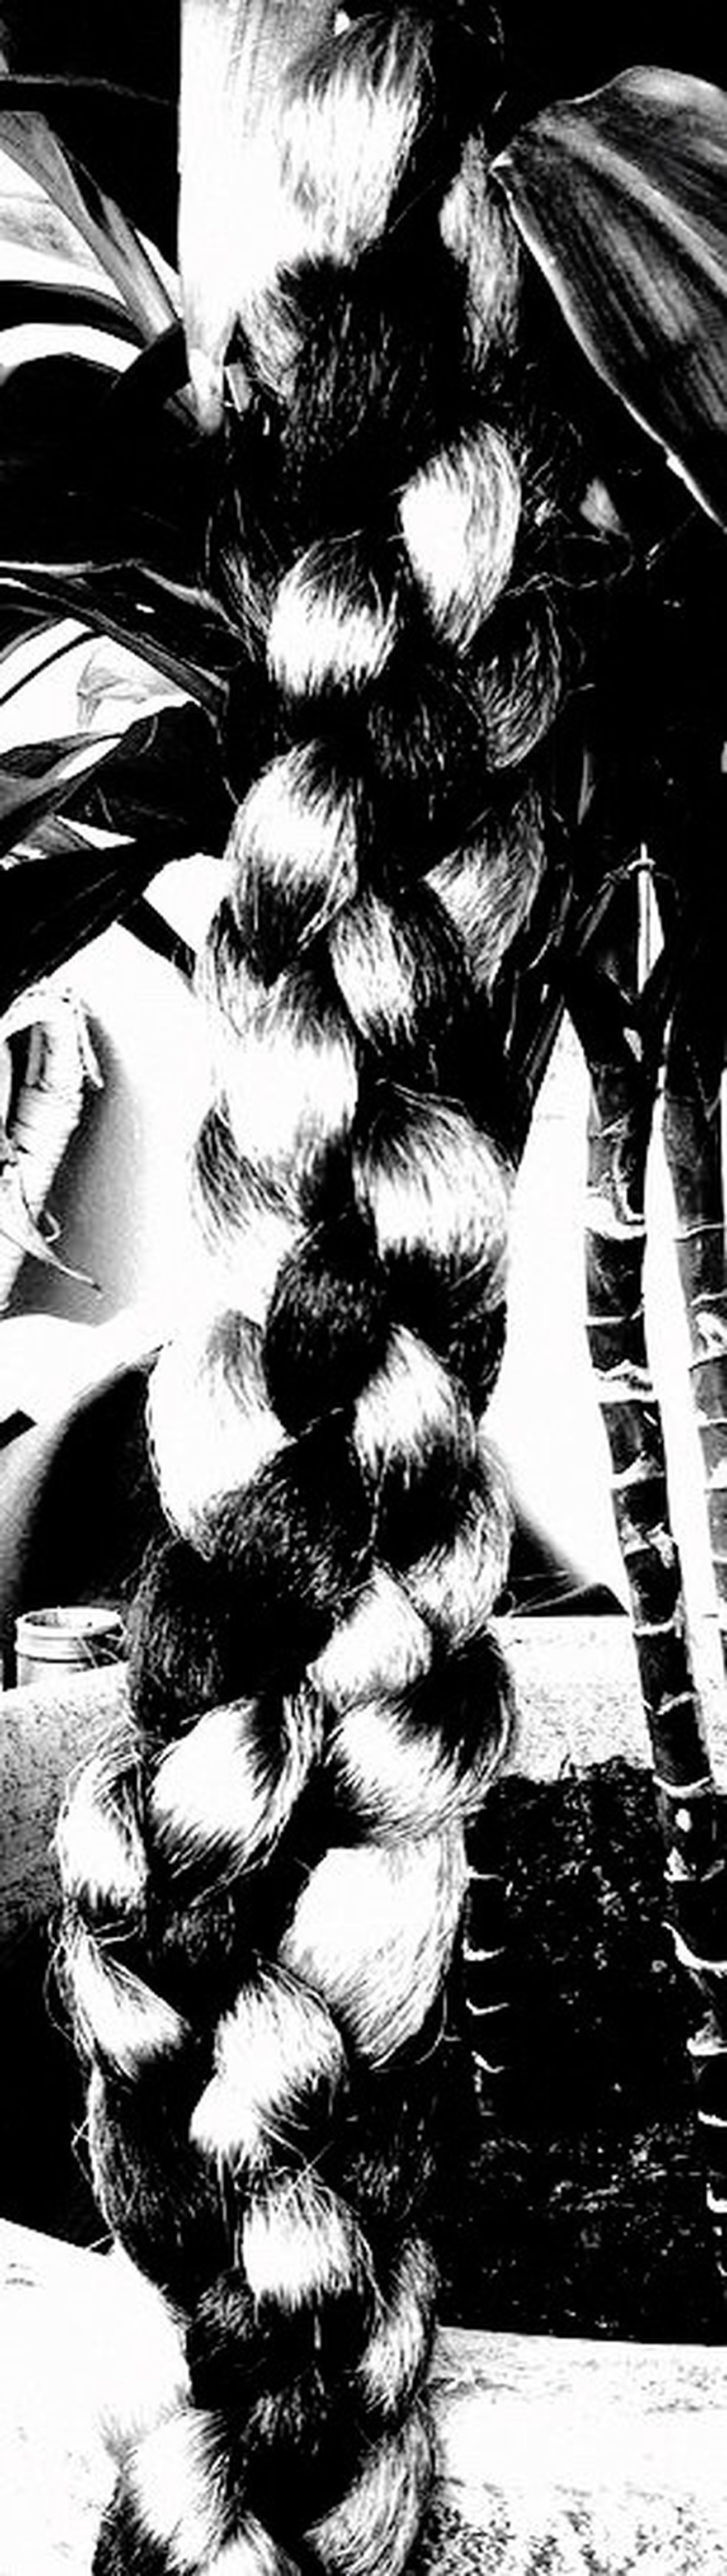 5 Strand Tropical Braid Fruit.. Close-up Blackandwhite Hair Braids Hairstyle Salon Avant-garde  Ponytail Hairstylist Hair Appointment. EyeEmNewHere Fine Art Photography